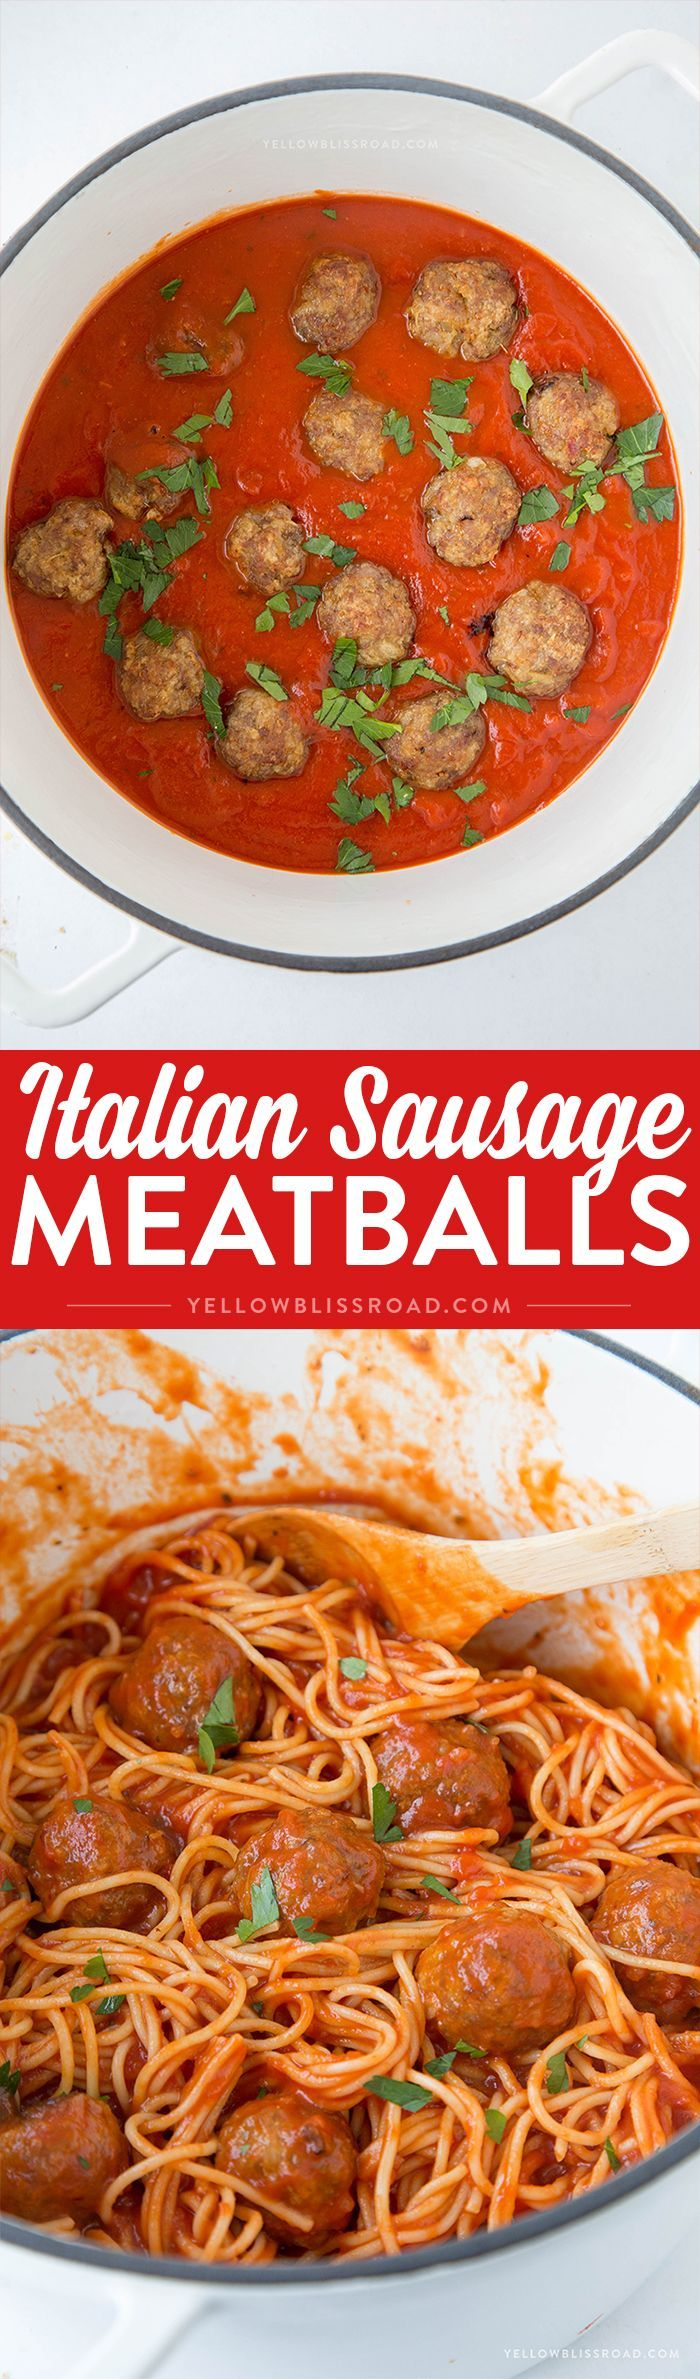 Italian Sausage Meatballs Recipe All Things Savory Pinterest